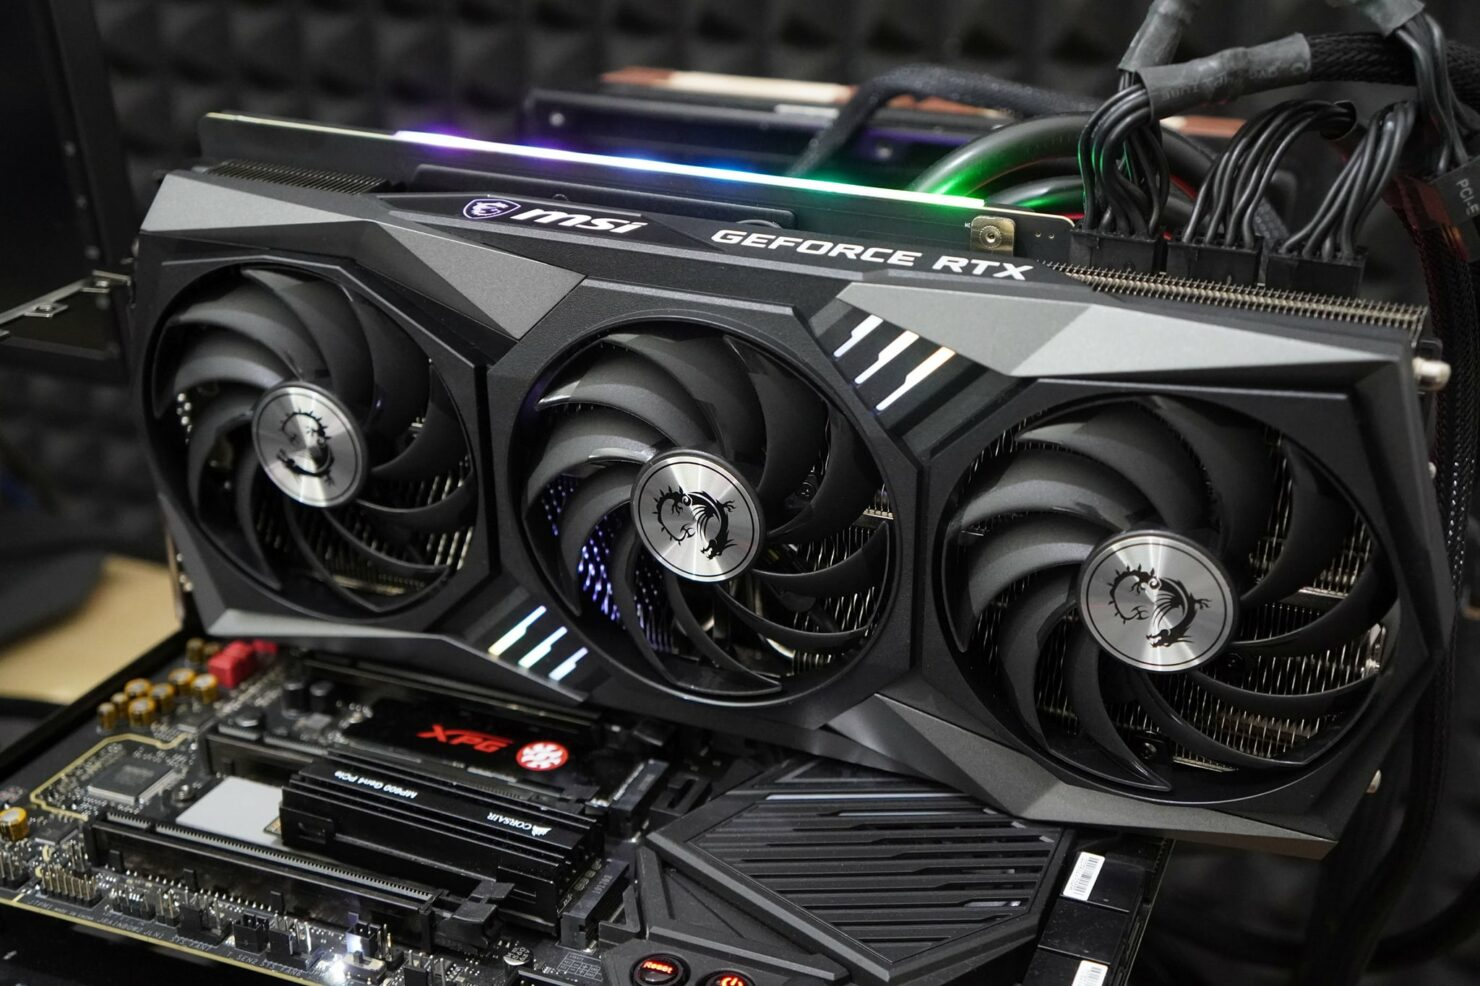 nvidia-rtx-3080-ti-cryptocurrency-hash-rate-limiter-tested,-results-inside